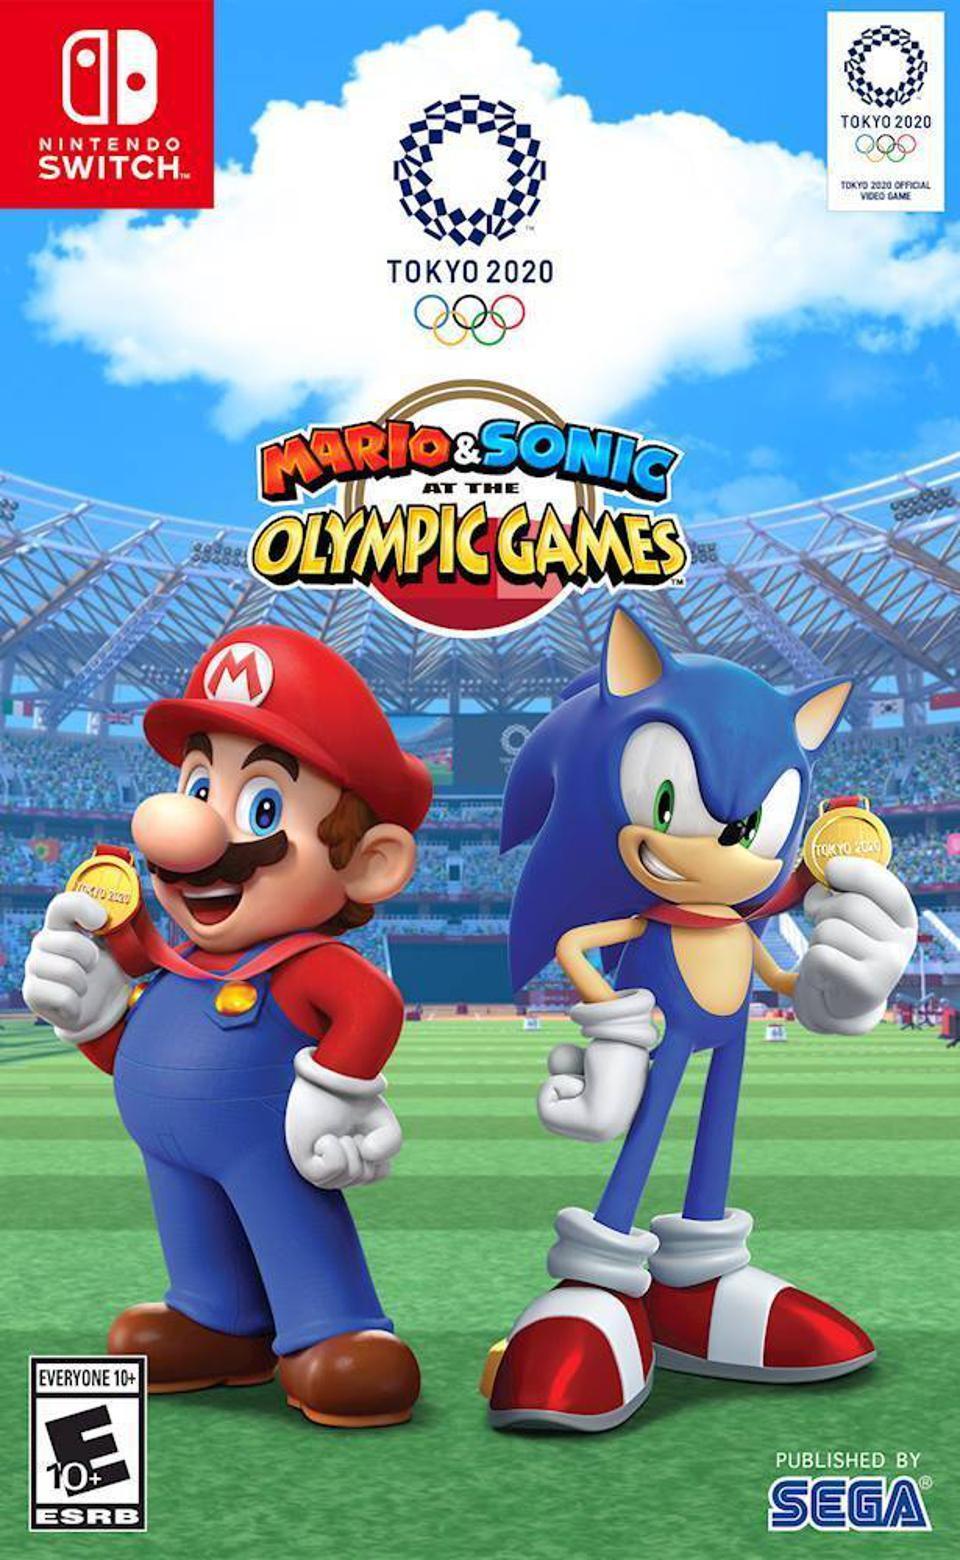 Mario and Sonic at the Olympic Games Tokyo 2020 for Nintendo Switch retail packaging